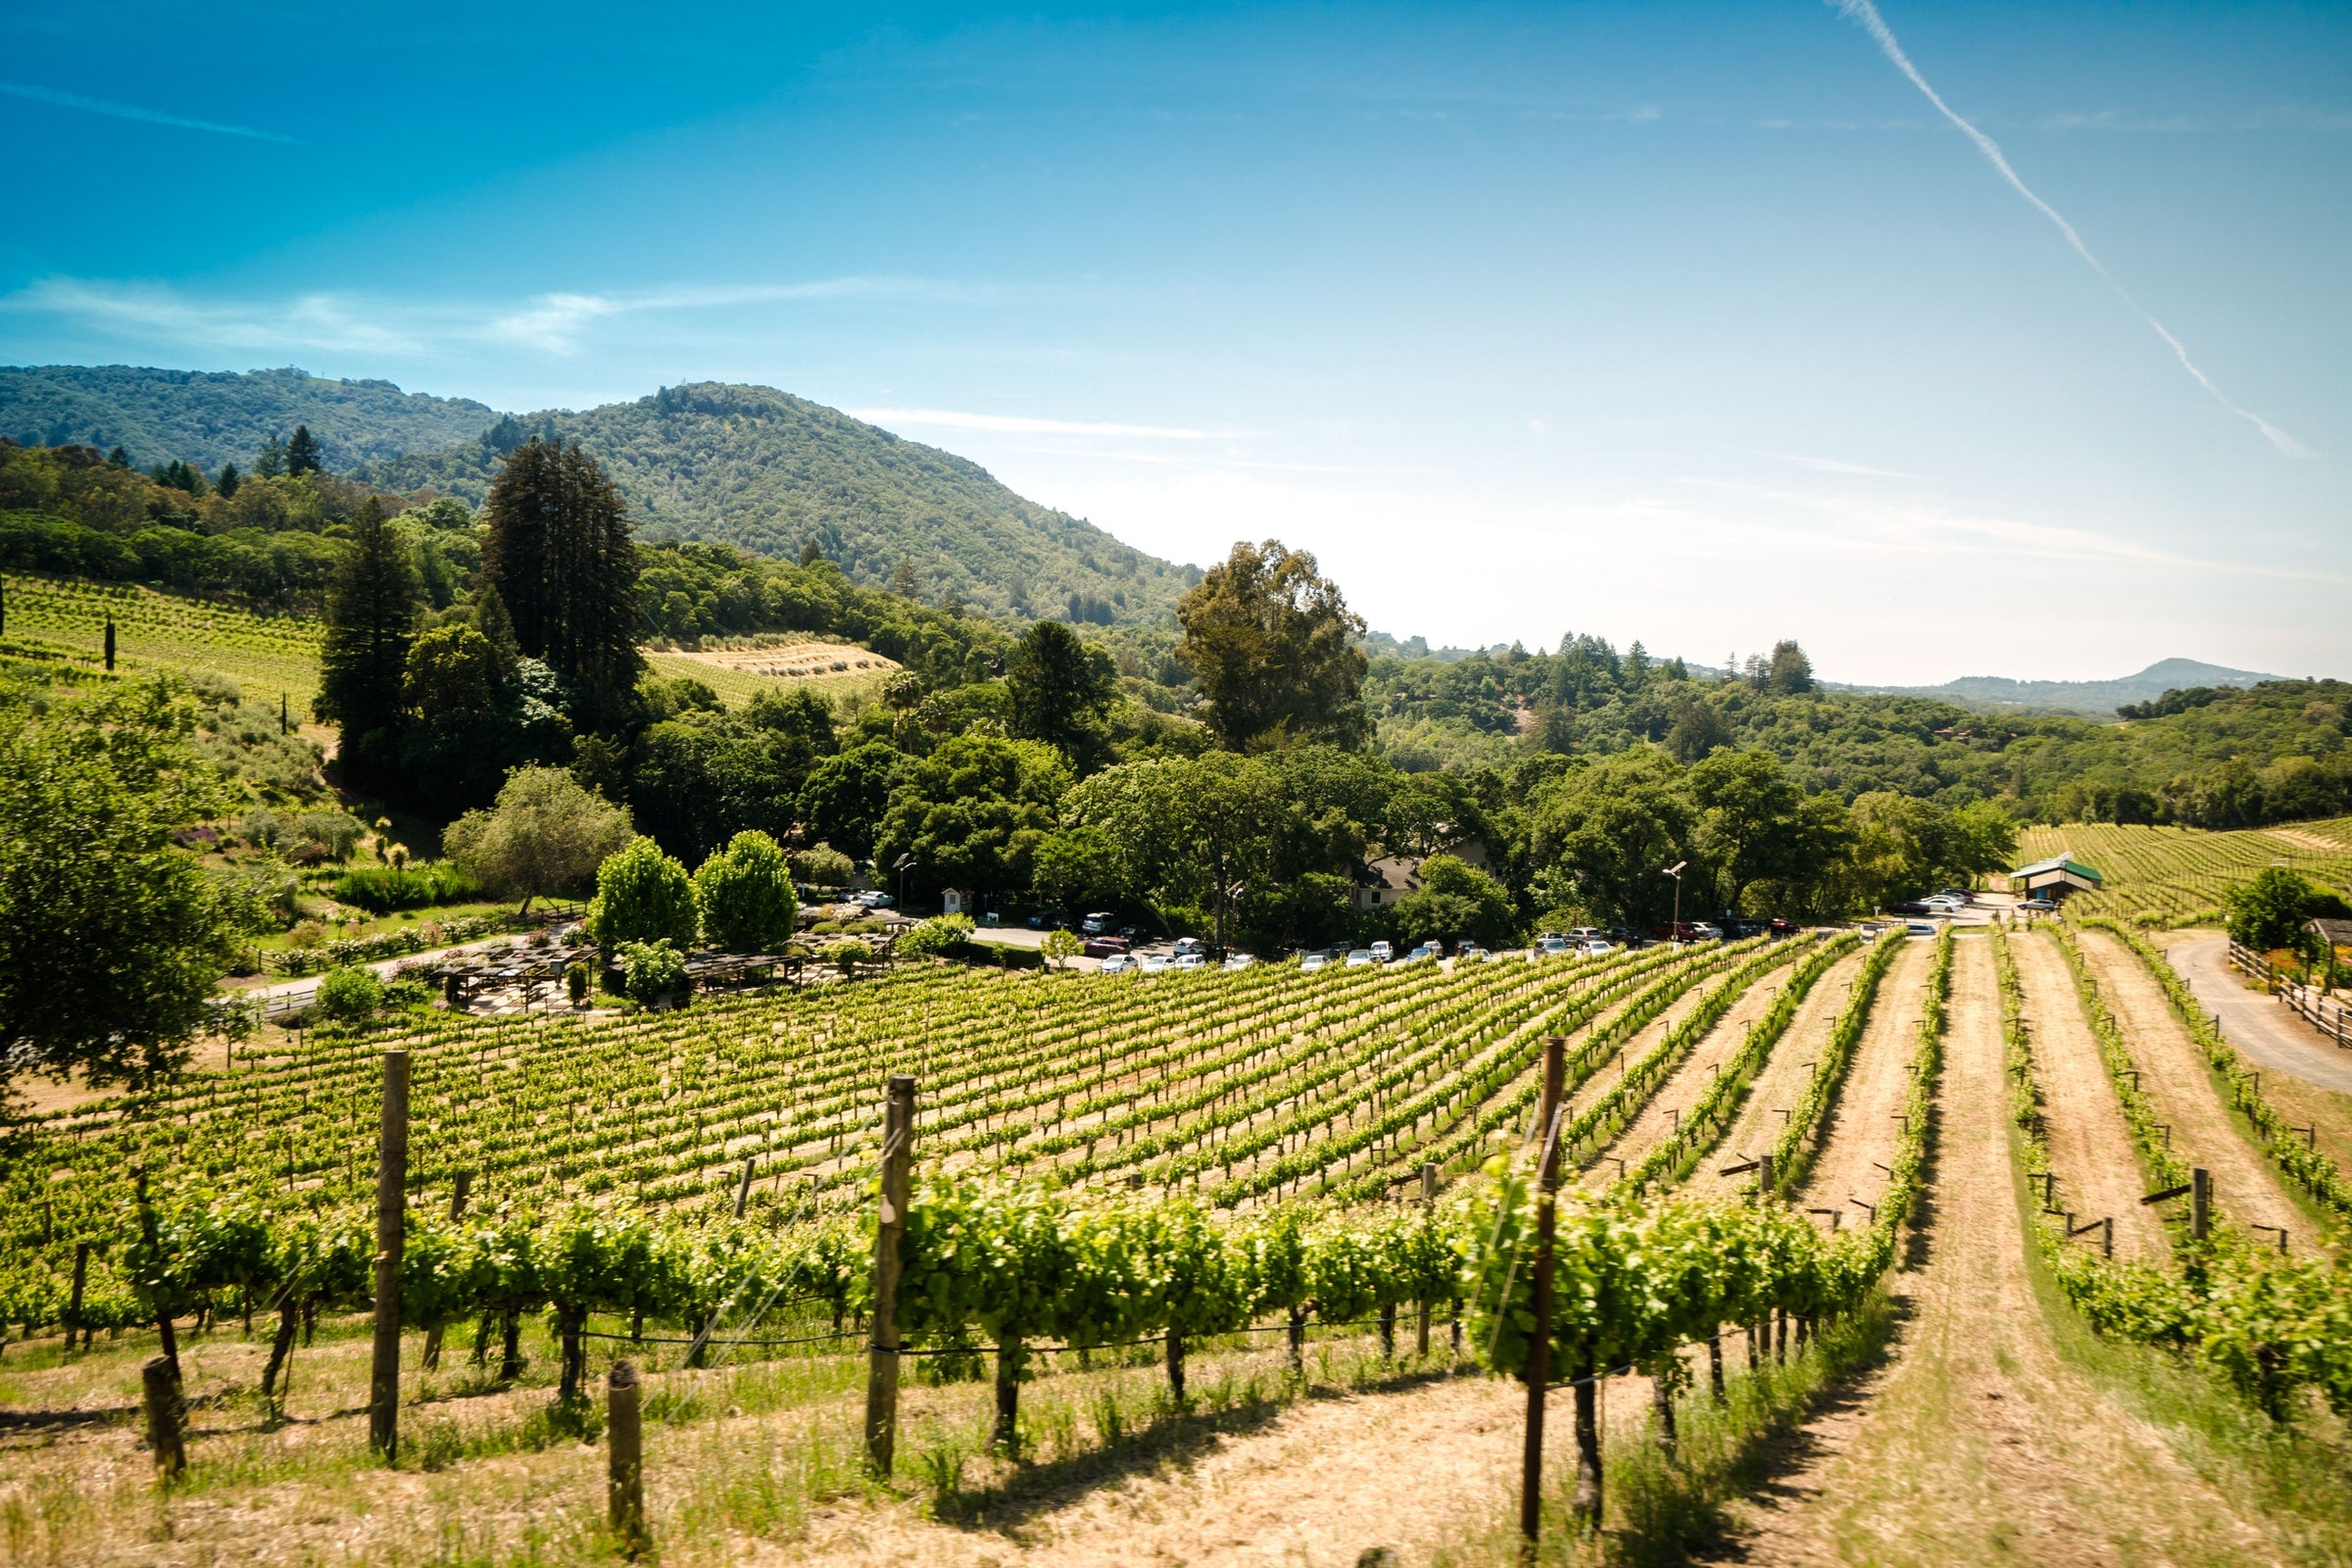 72 Hours in Sonoma